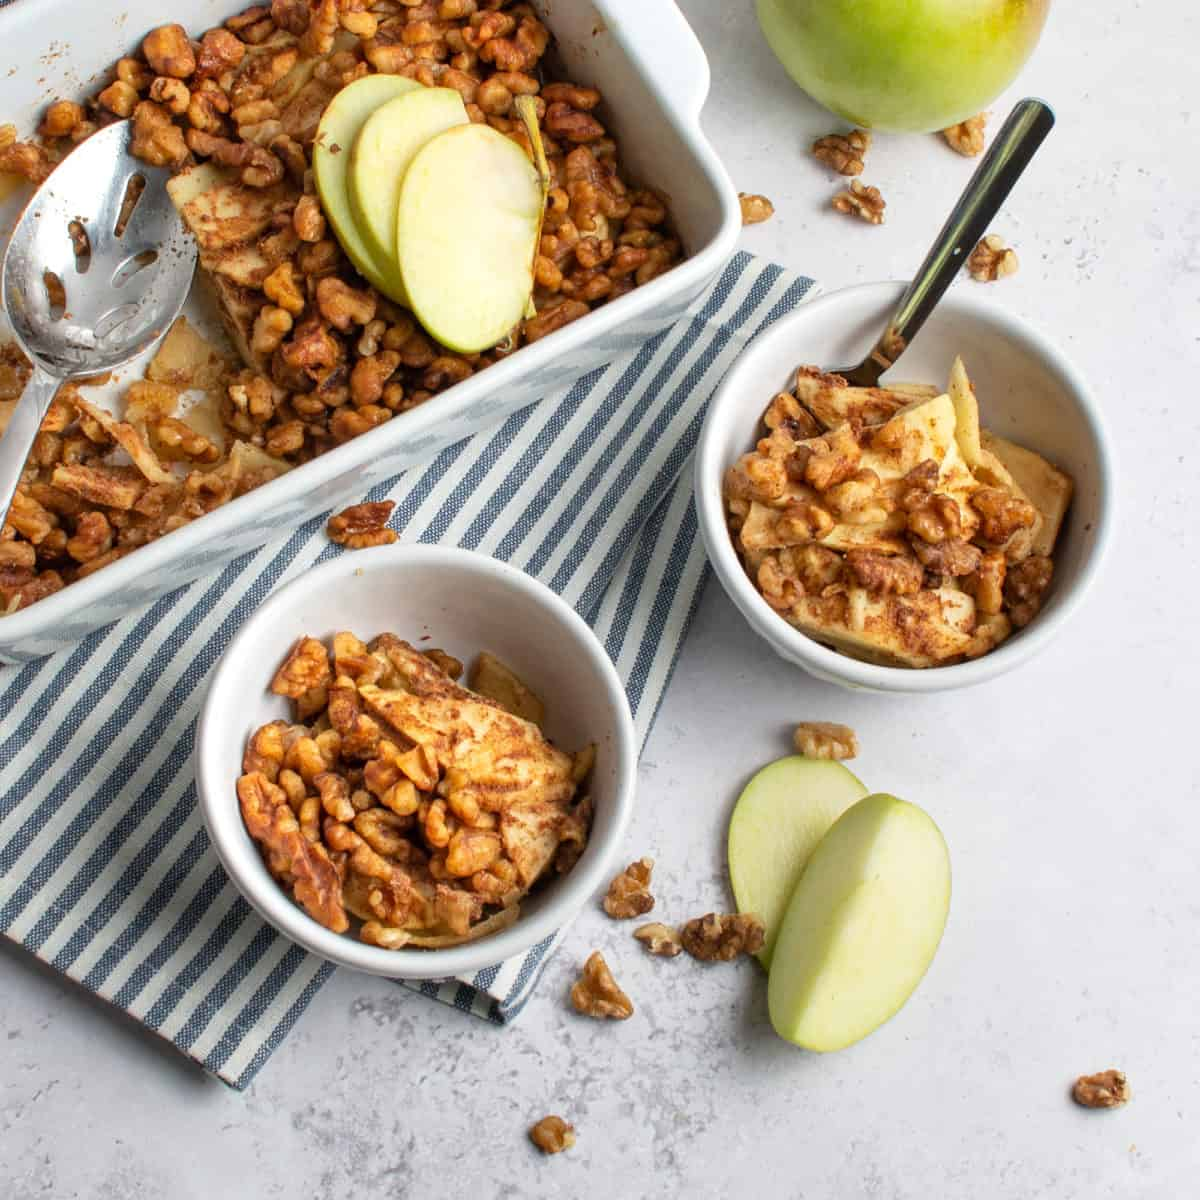 Finished apple crisp in a baking dish being scooped into serving bowls.